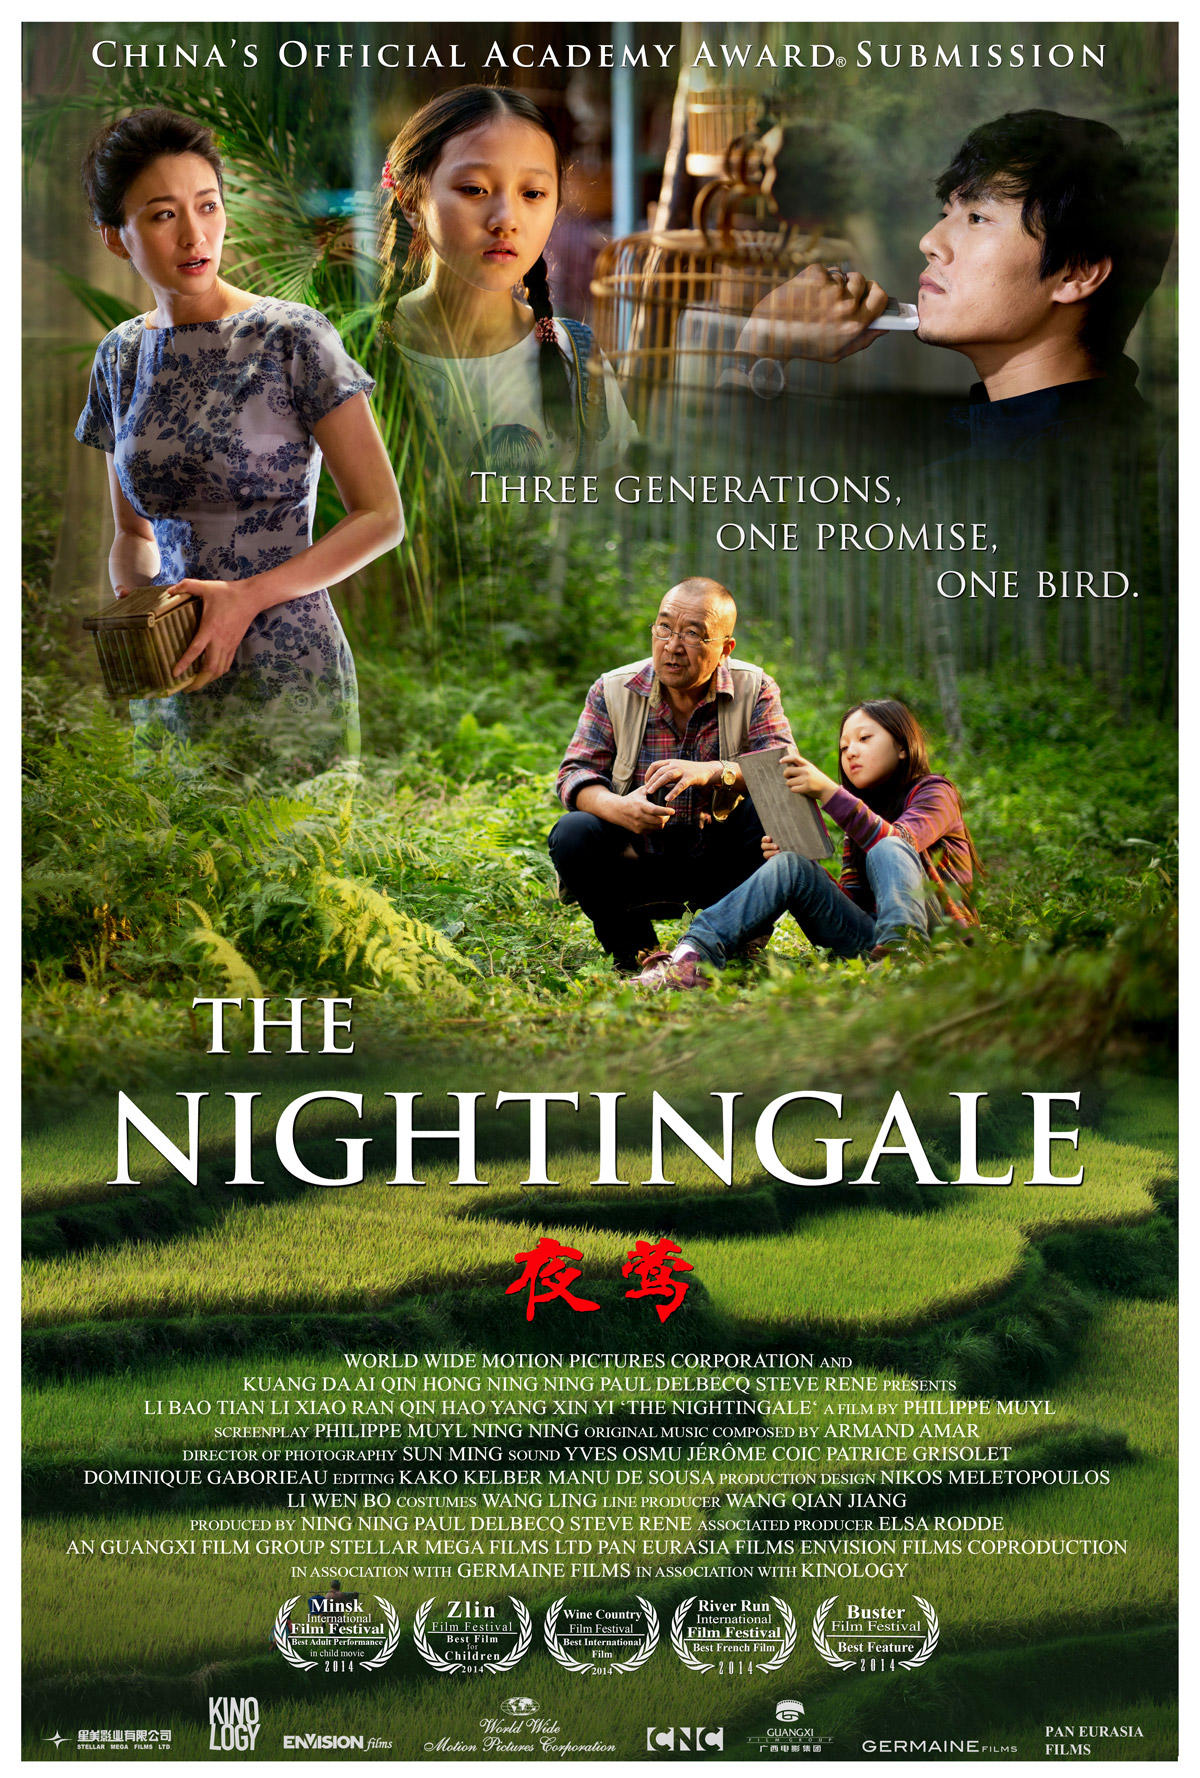 The Nightingale poster art